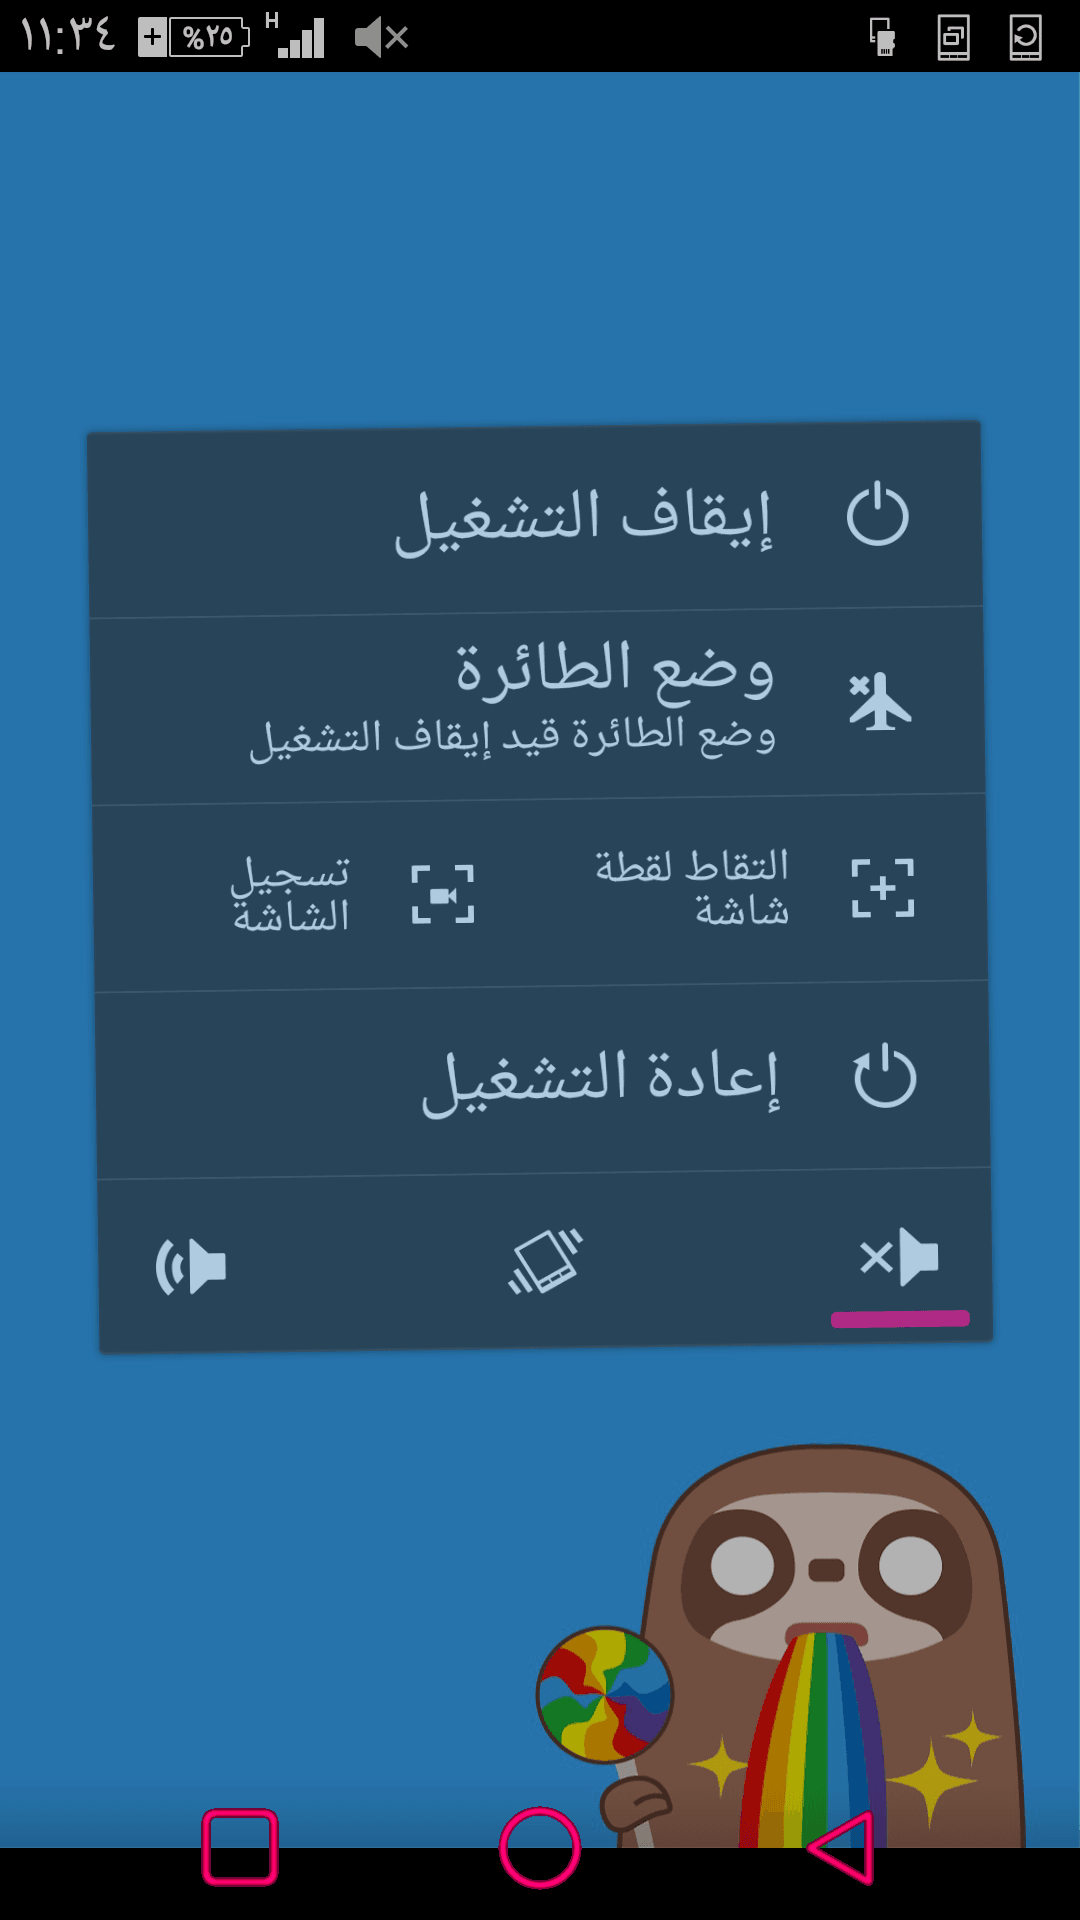 Screenshot_٢٠١٦-٠٤-١٥-١١-٣٤-٣٩